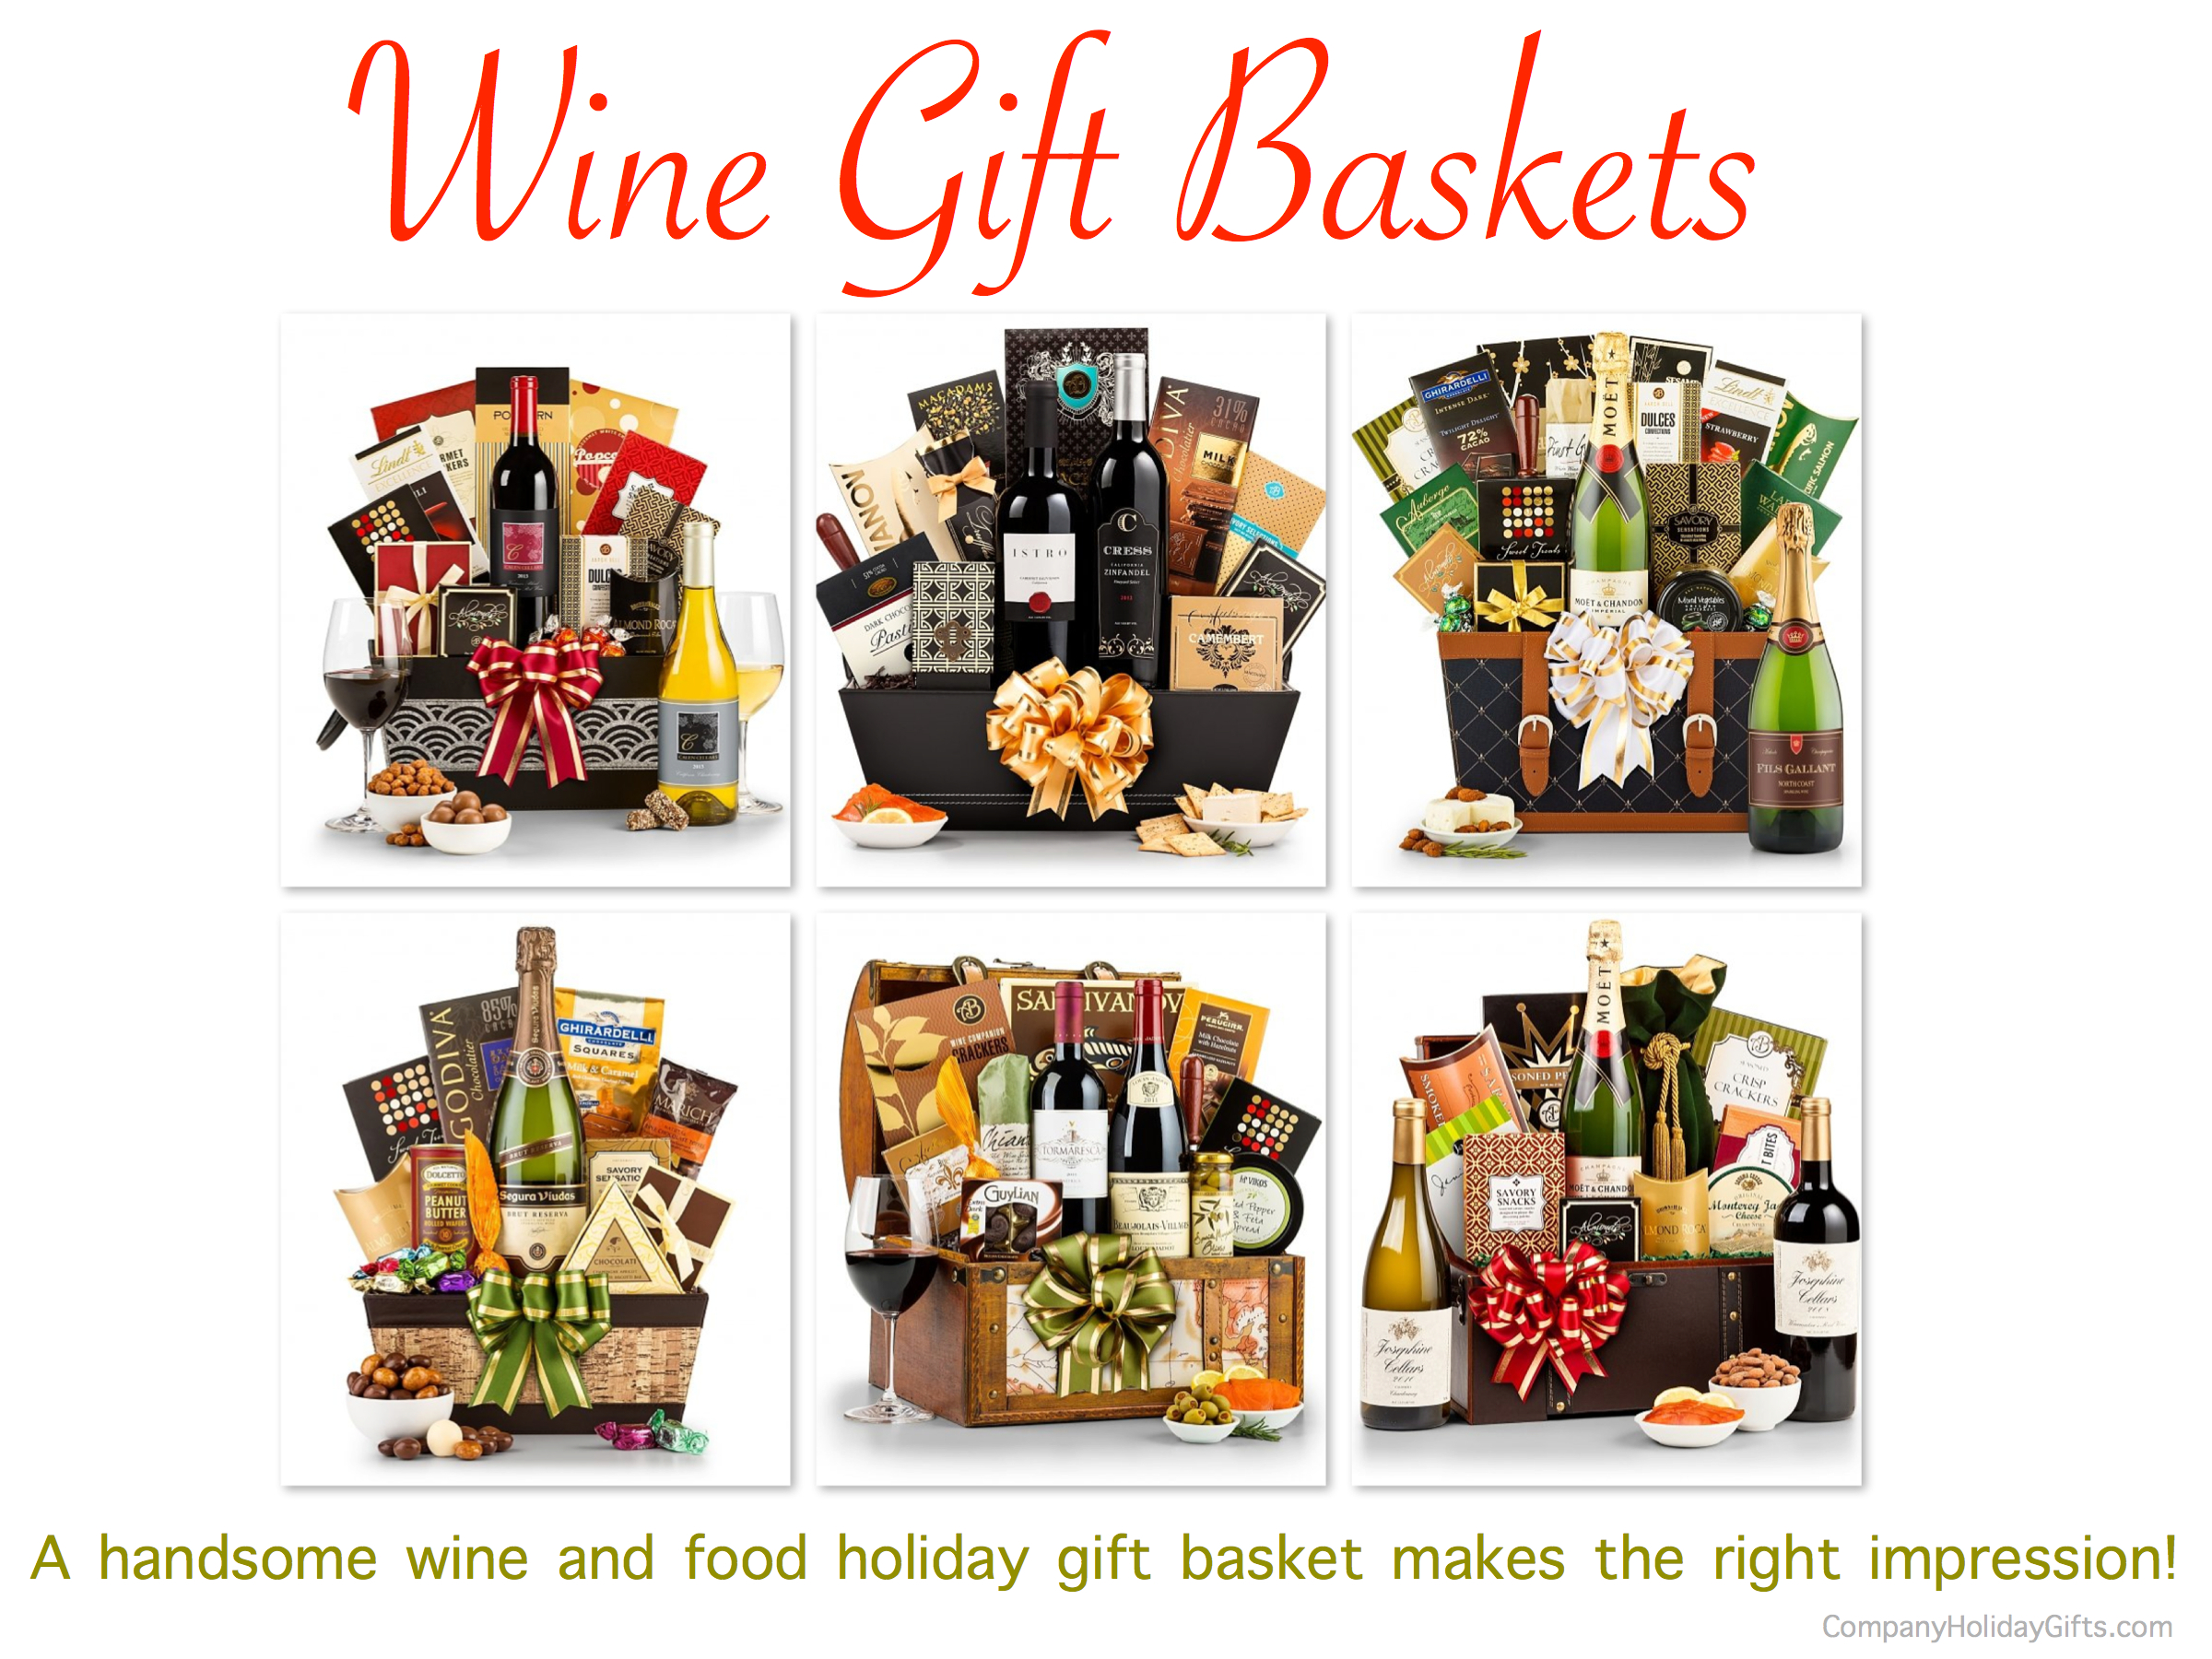 Wine & Food Holiday Gift Baskets, 20 Best Company Holiday Gift Ideas Under $100.00